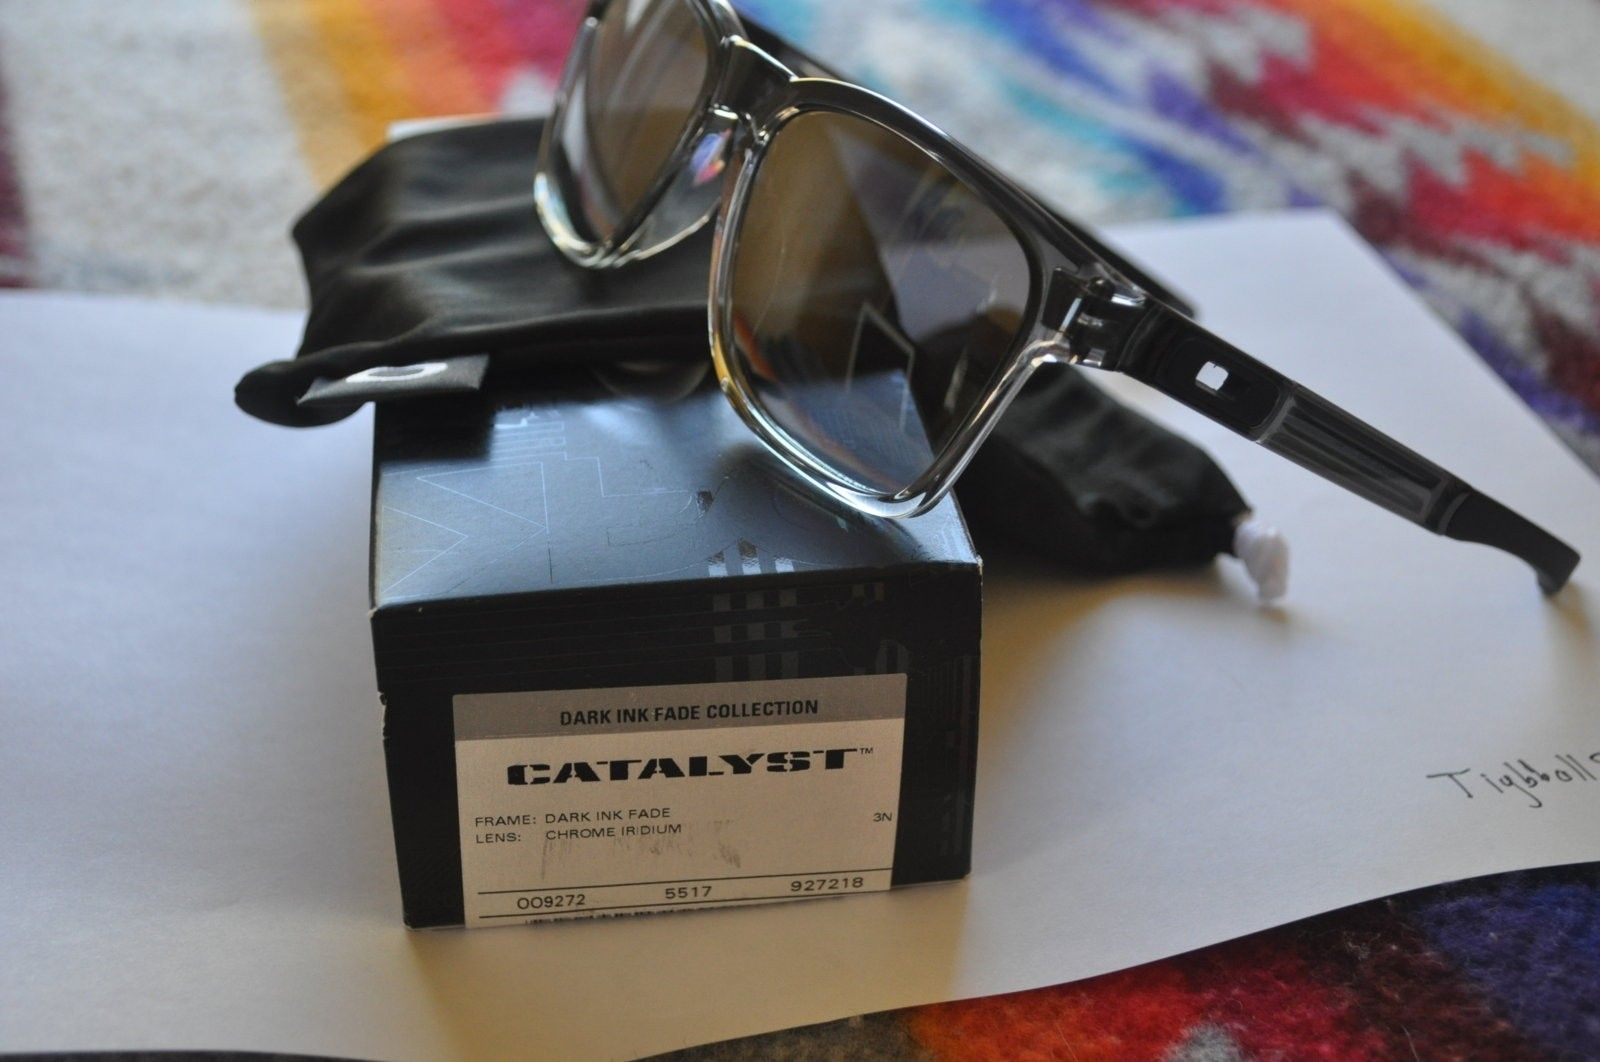 SGH Exclusive Dark Ink Fade Catalyst BNIB $100 - DSC_2353.JPG